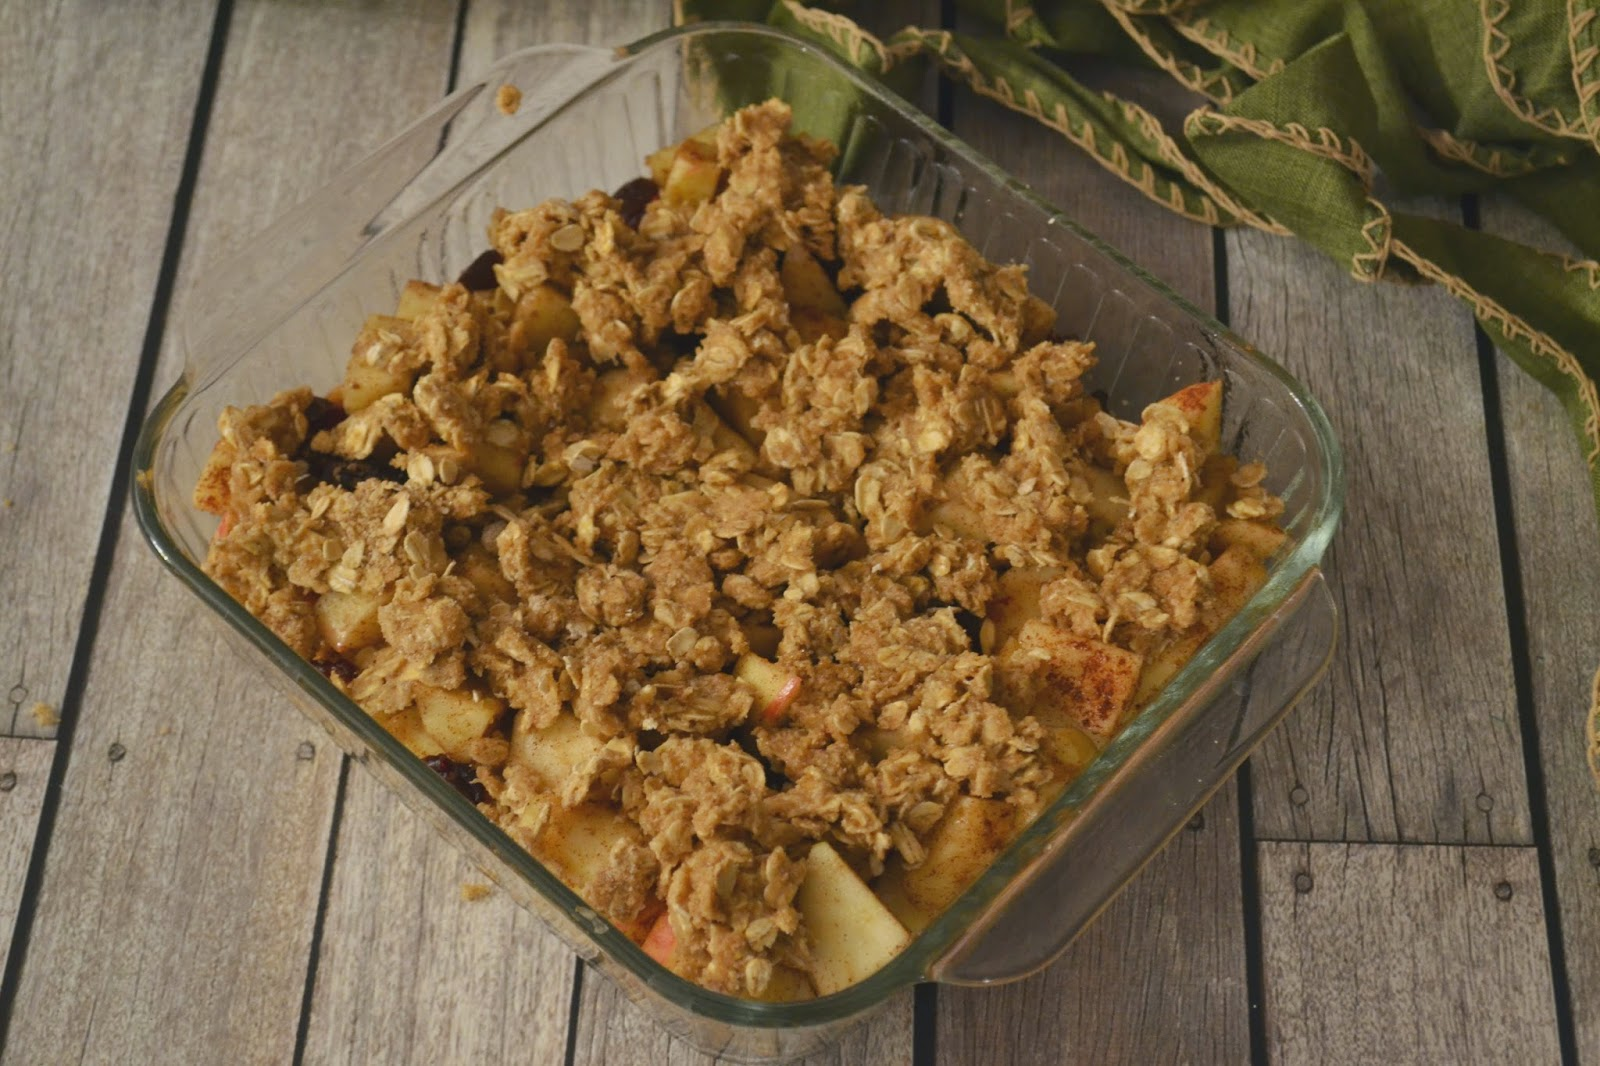 Apple Cranberry Crisp #recipe Apple Crisp recipes.  Apple Cranberry crisp recipe.  Cranberry desserts.  Apple Desserts.  Cranberry Apple Crisp Recipe